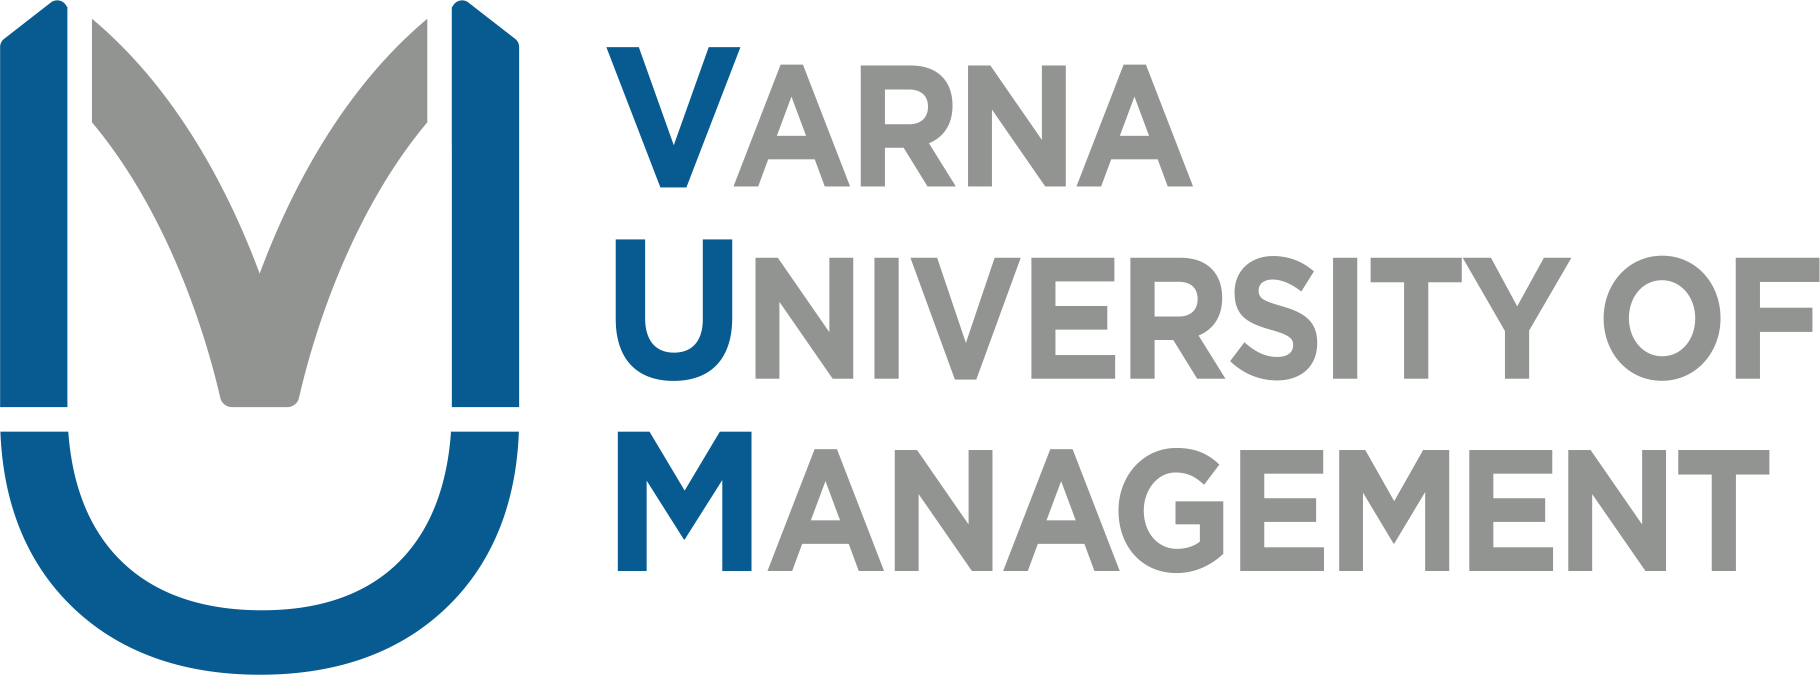 Varna University of Management | VUM